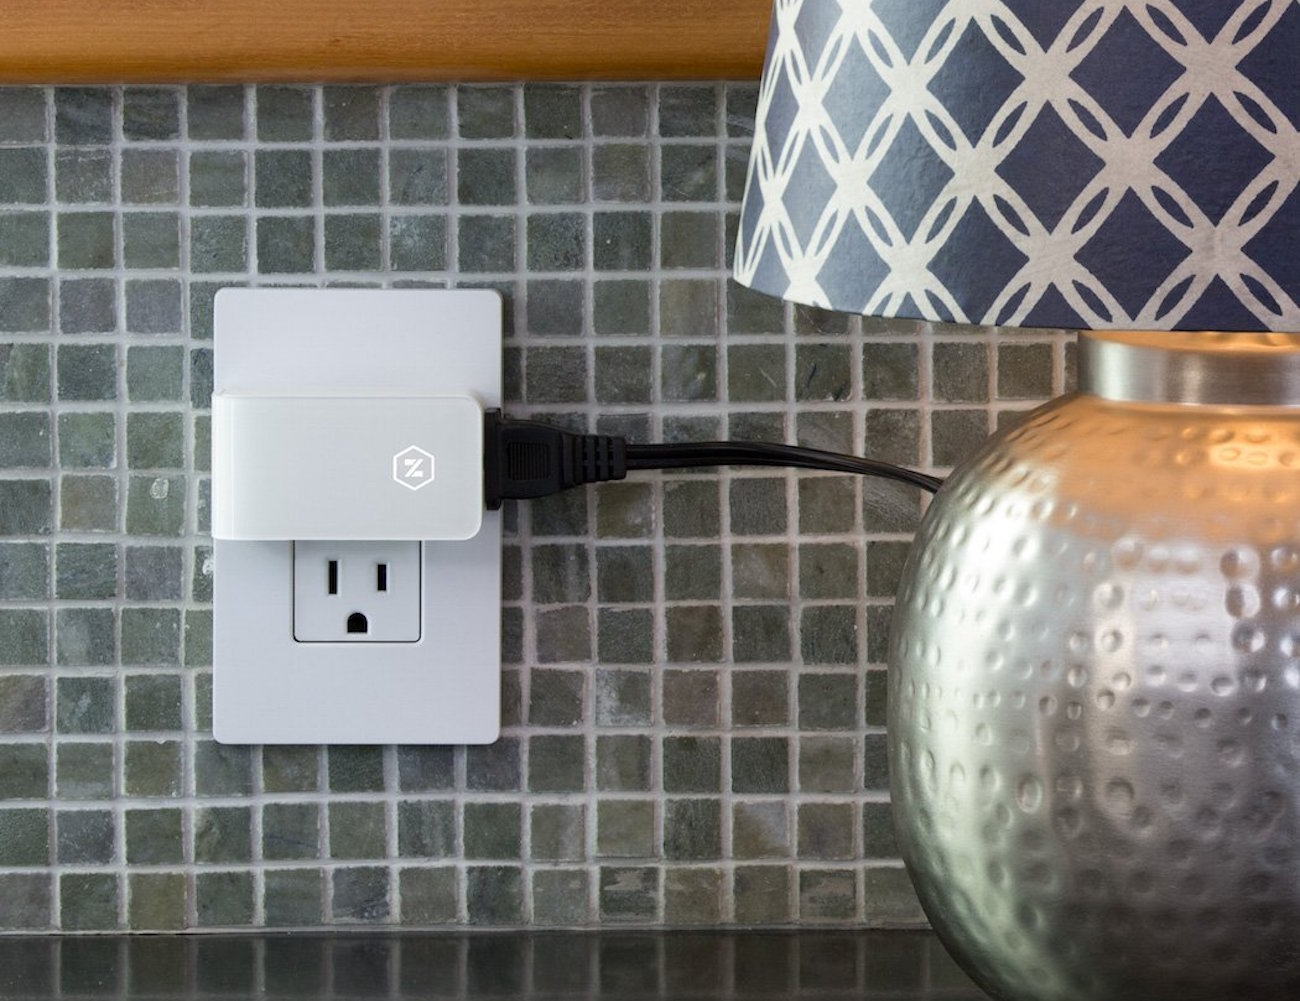 Zuli Smartplug – Smart Outlet Plug for Home Control